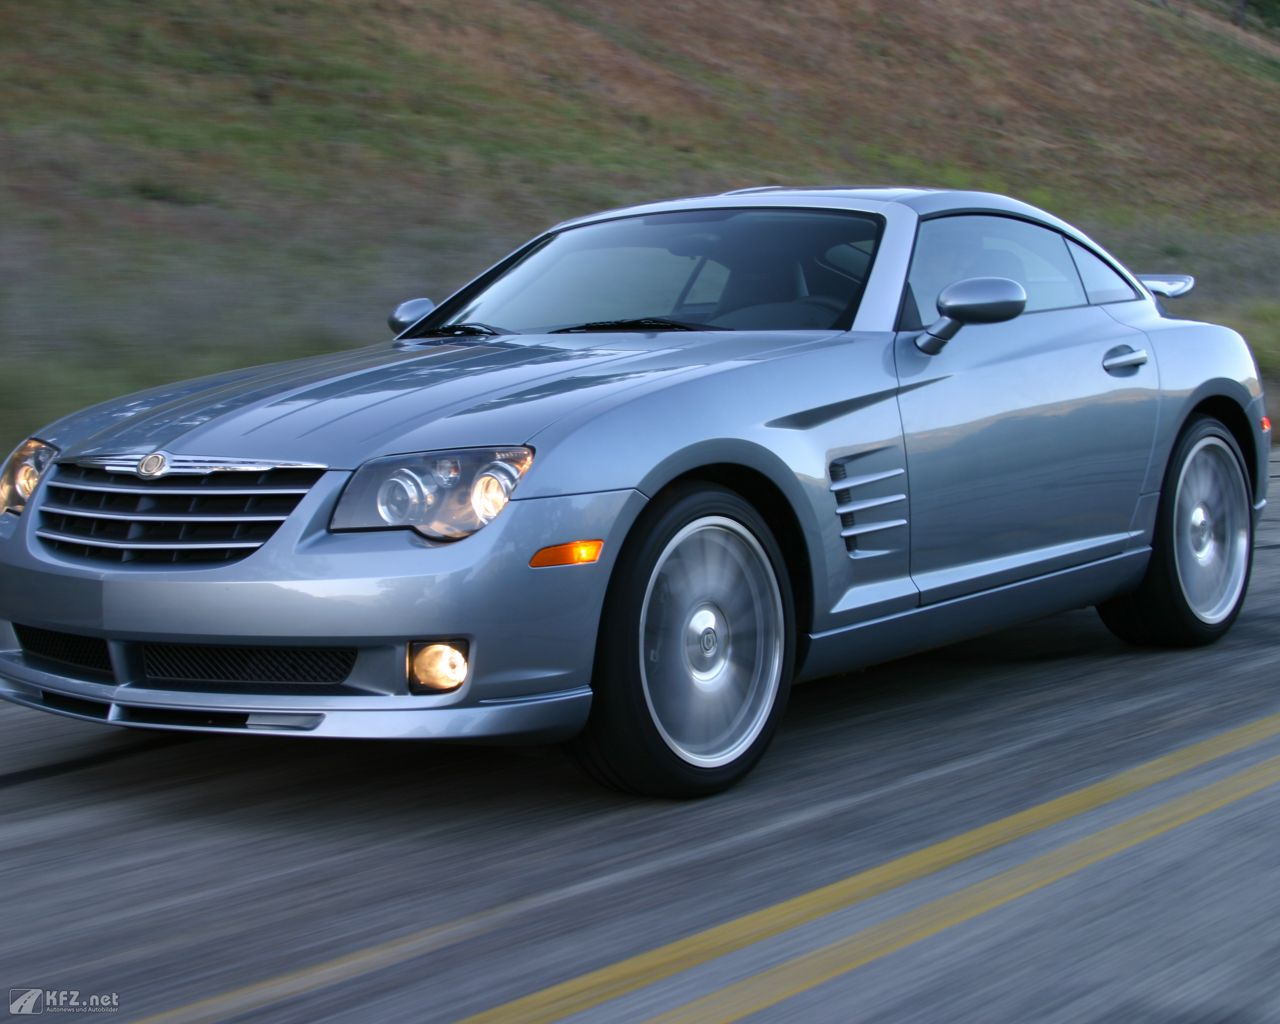 chrysler-crossfire-1280x1024-11